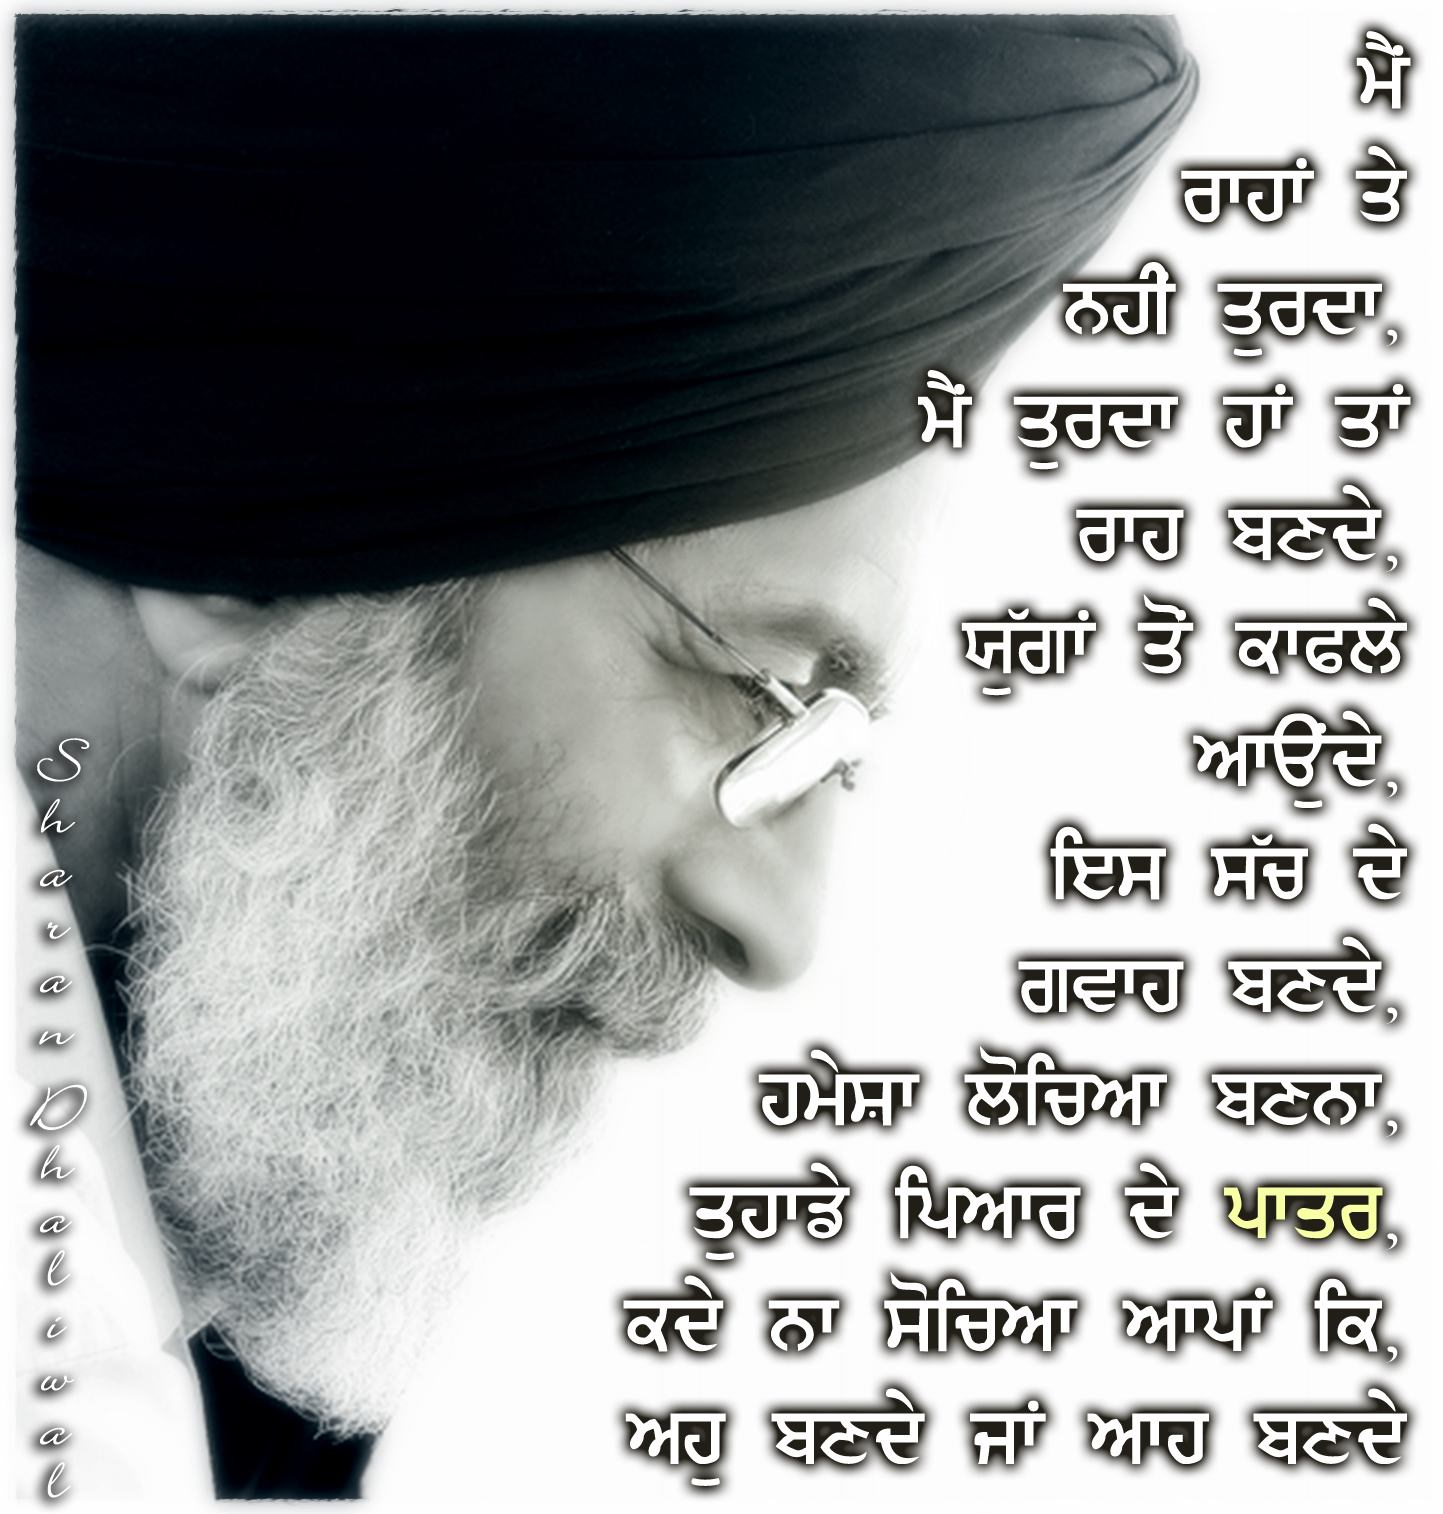 Surjit Paatar Pictures And Images